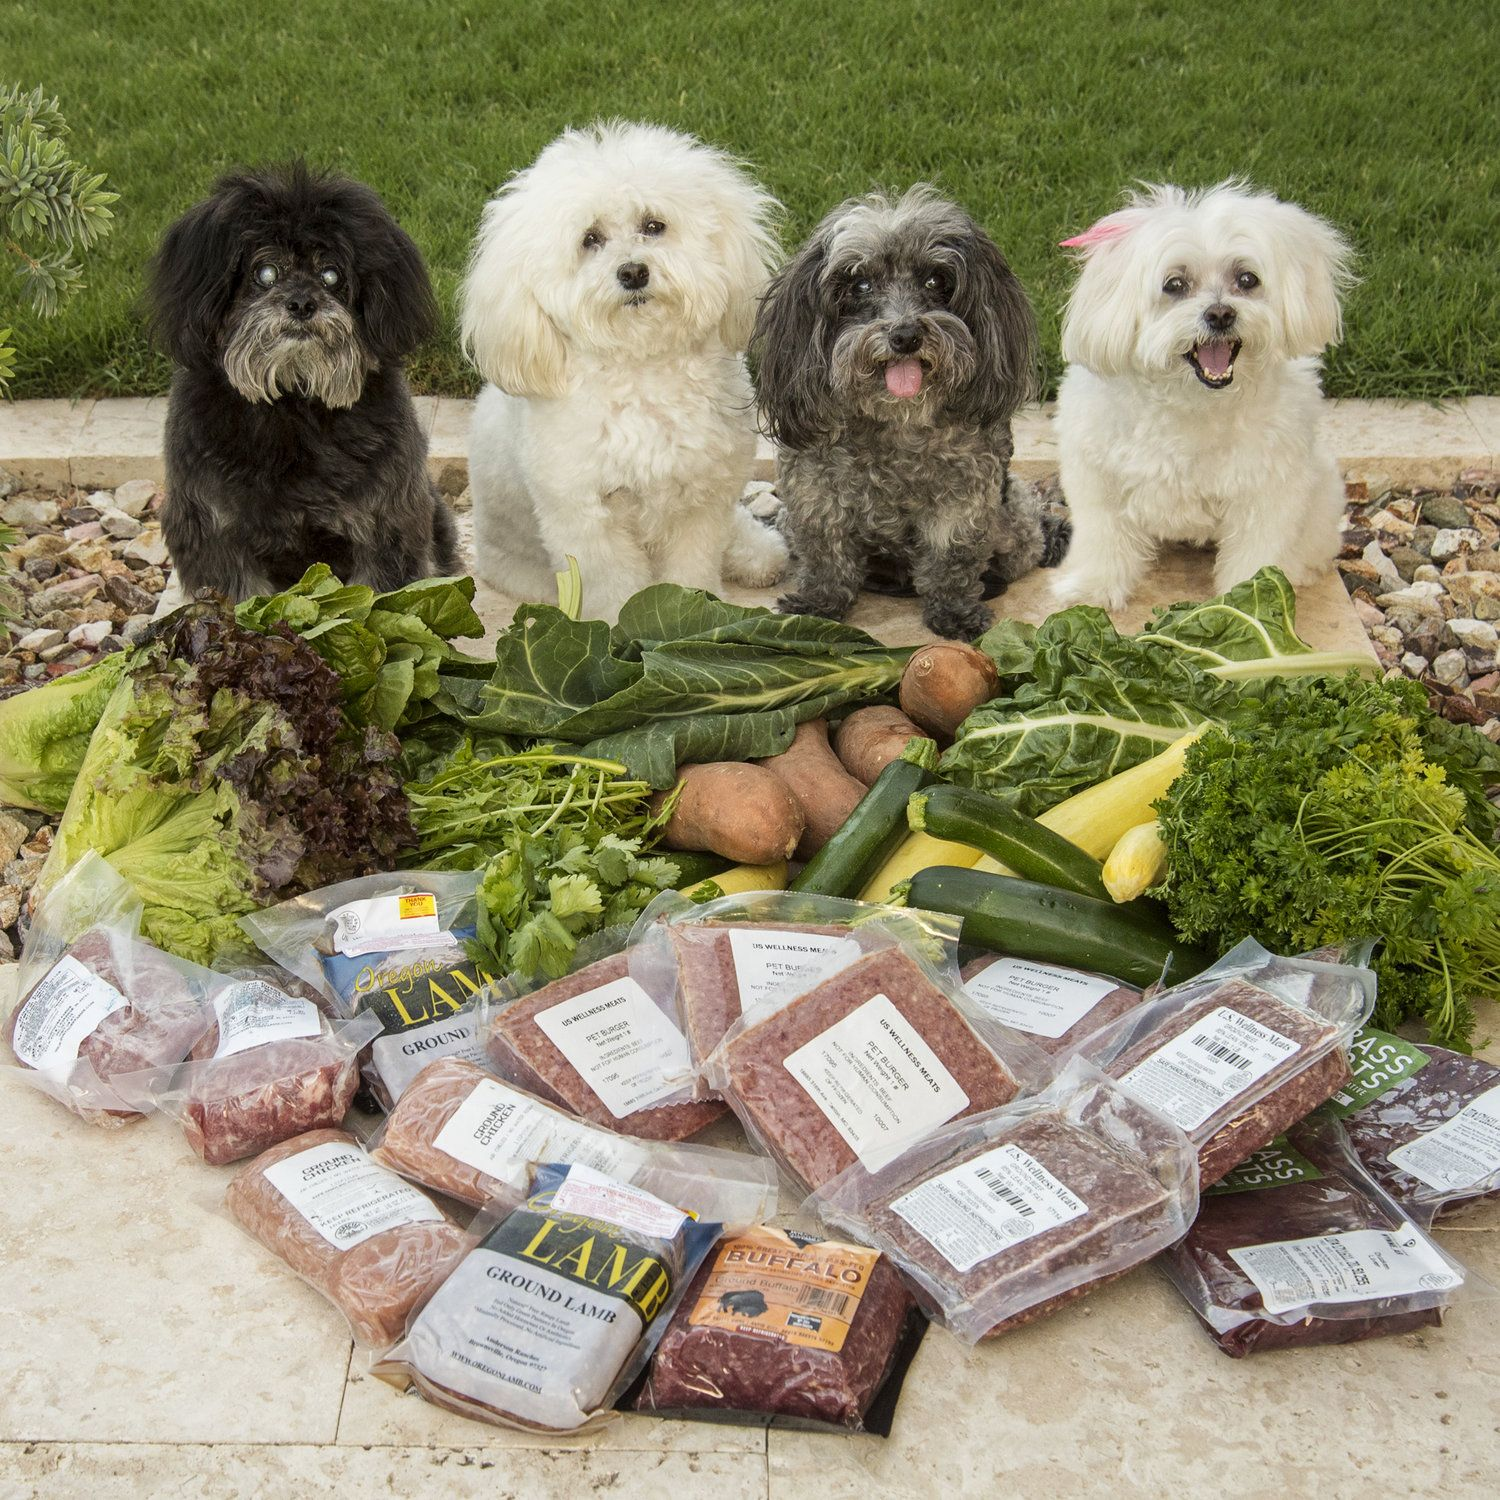 Eatlikethepbjpack Doggy Animals Organic Vegetables